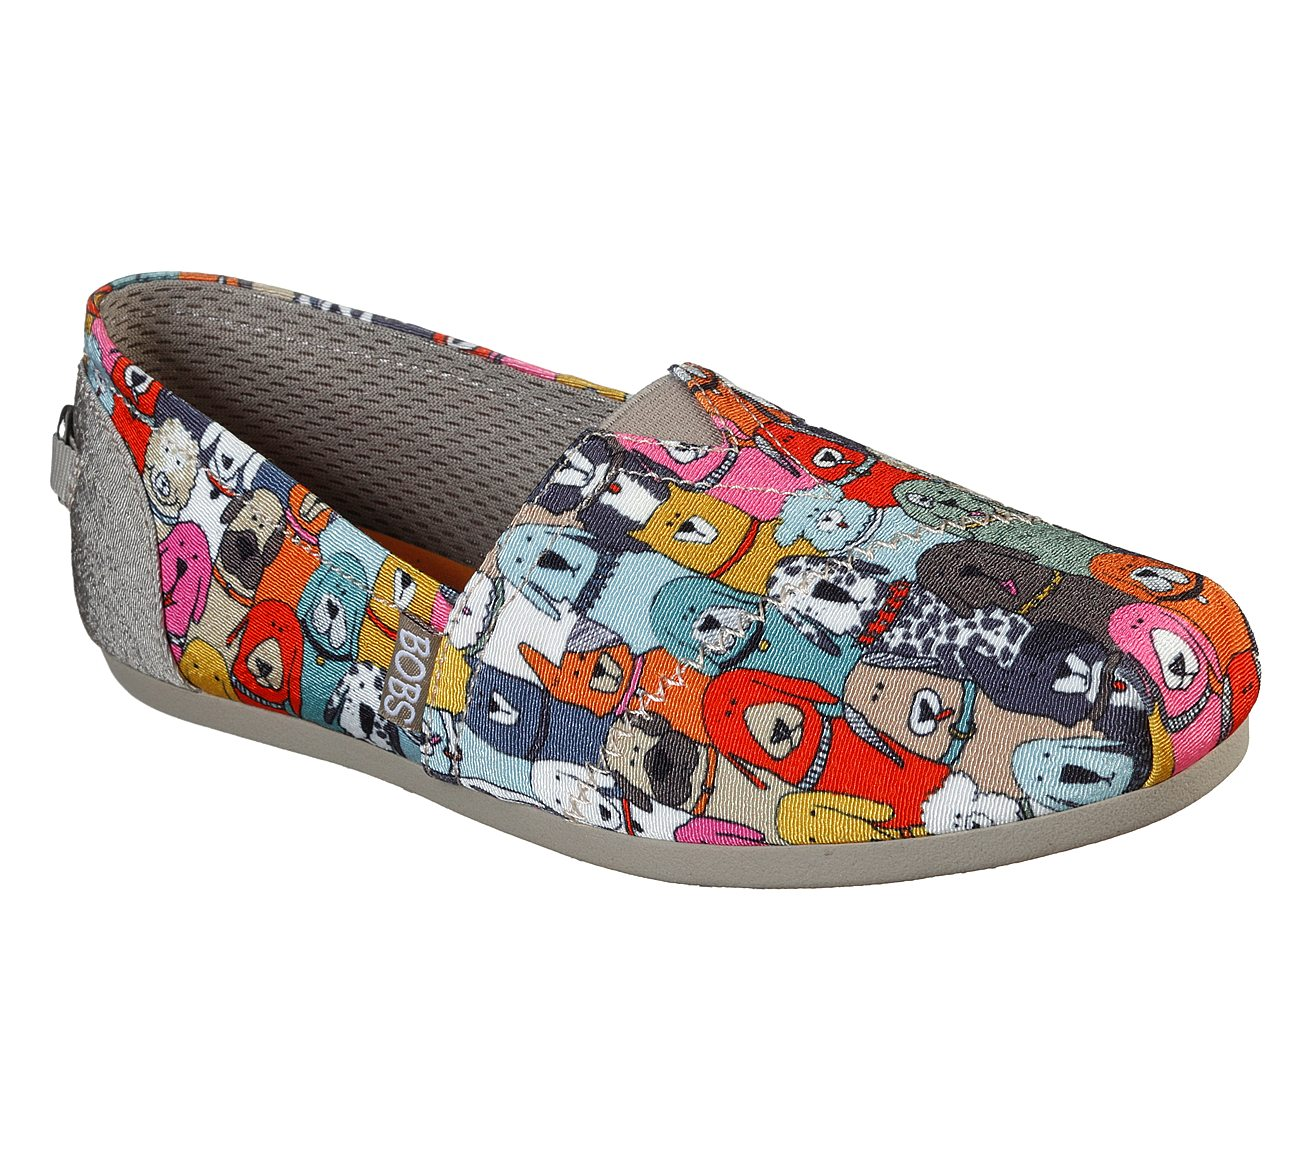 487919c9465 Buy SKECHERS BOBS Plush - Wag Party SKECHERS Bobs Shoes only £39.00